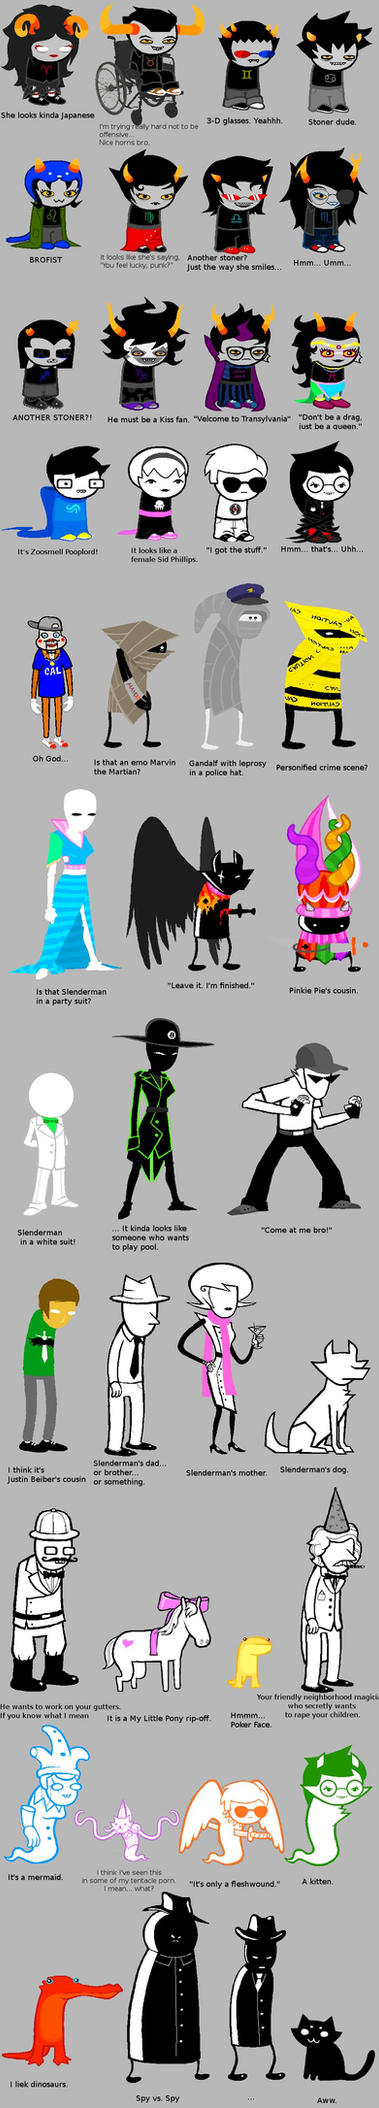 Homestuck according to PedroIV by jg-is-me